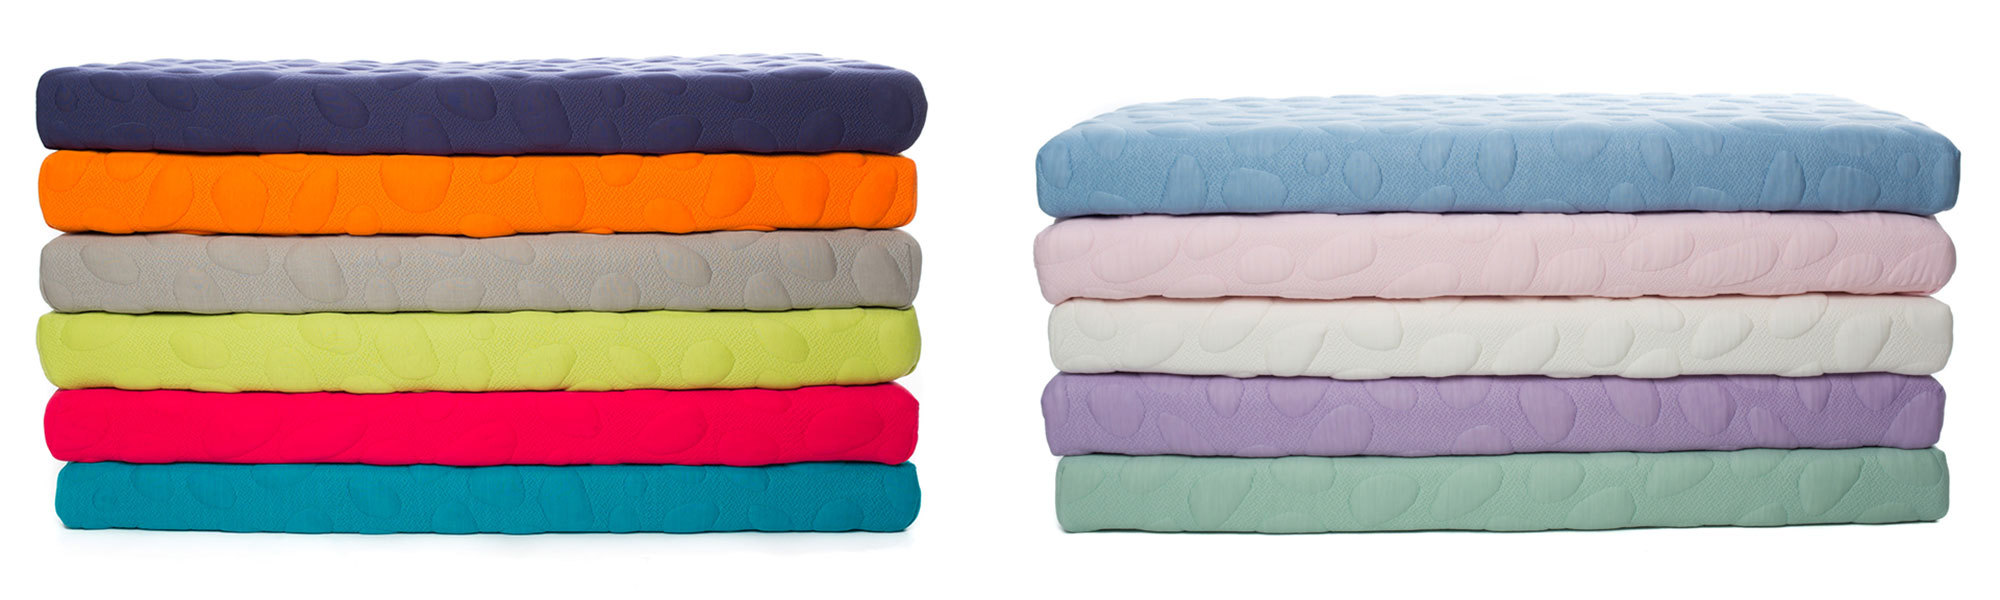 nook baby products nook pebble pure organic nontoxic breathable crib mattresses color stacks